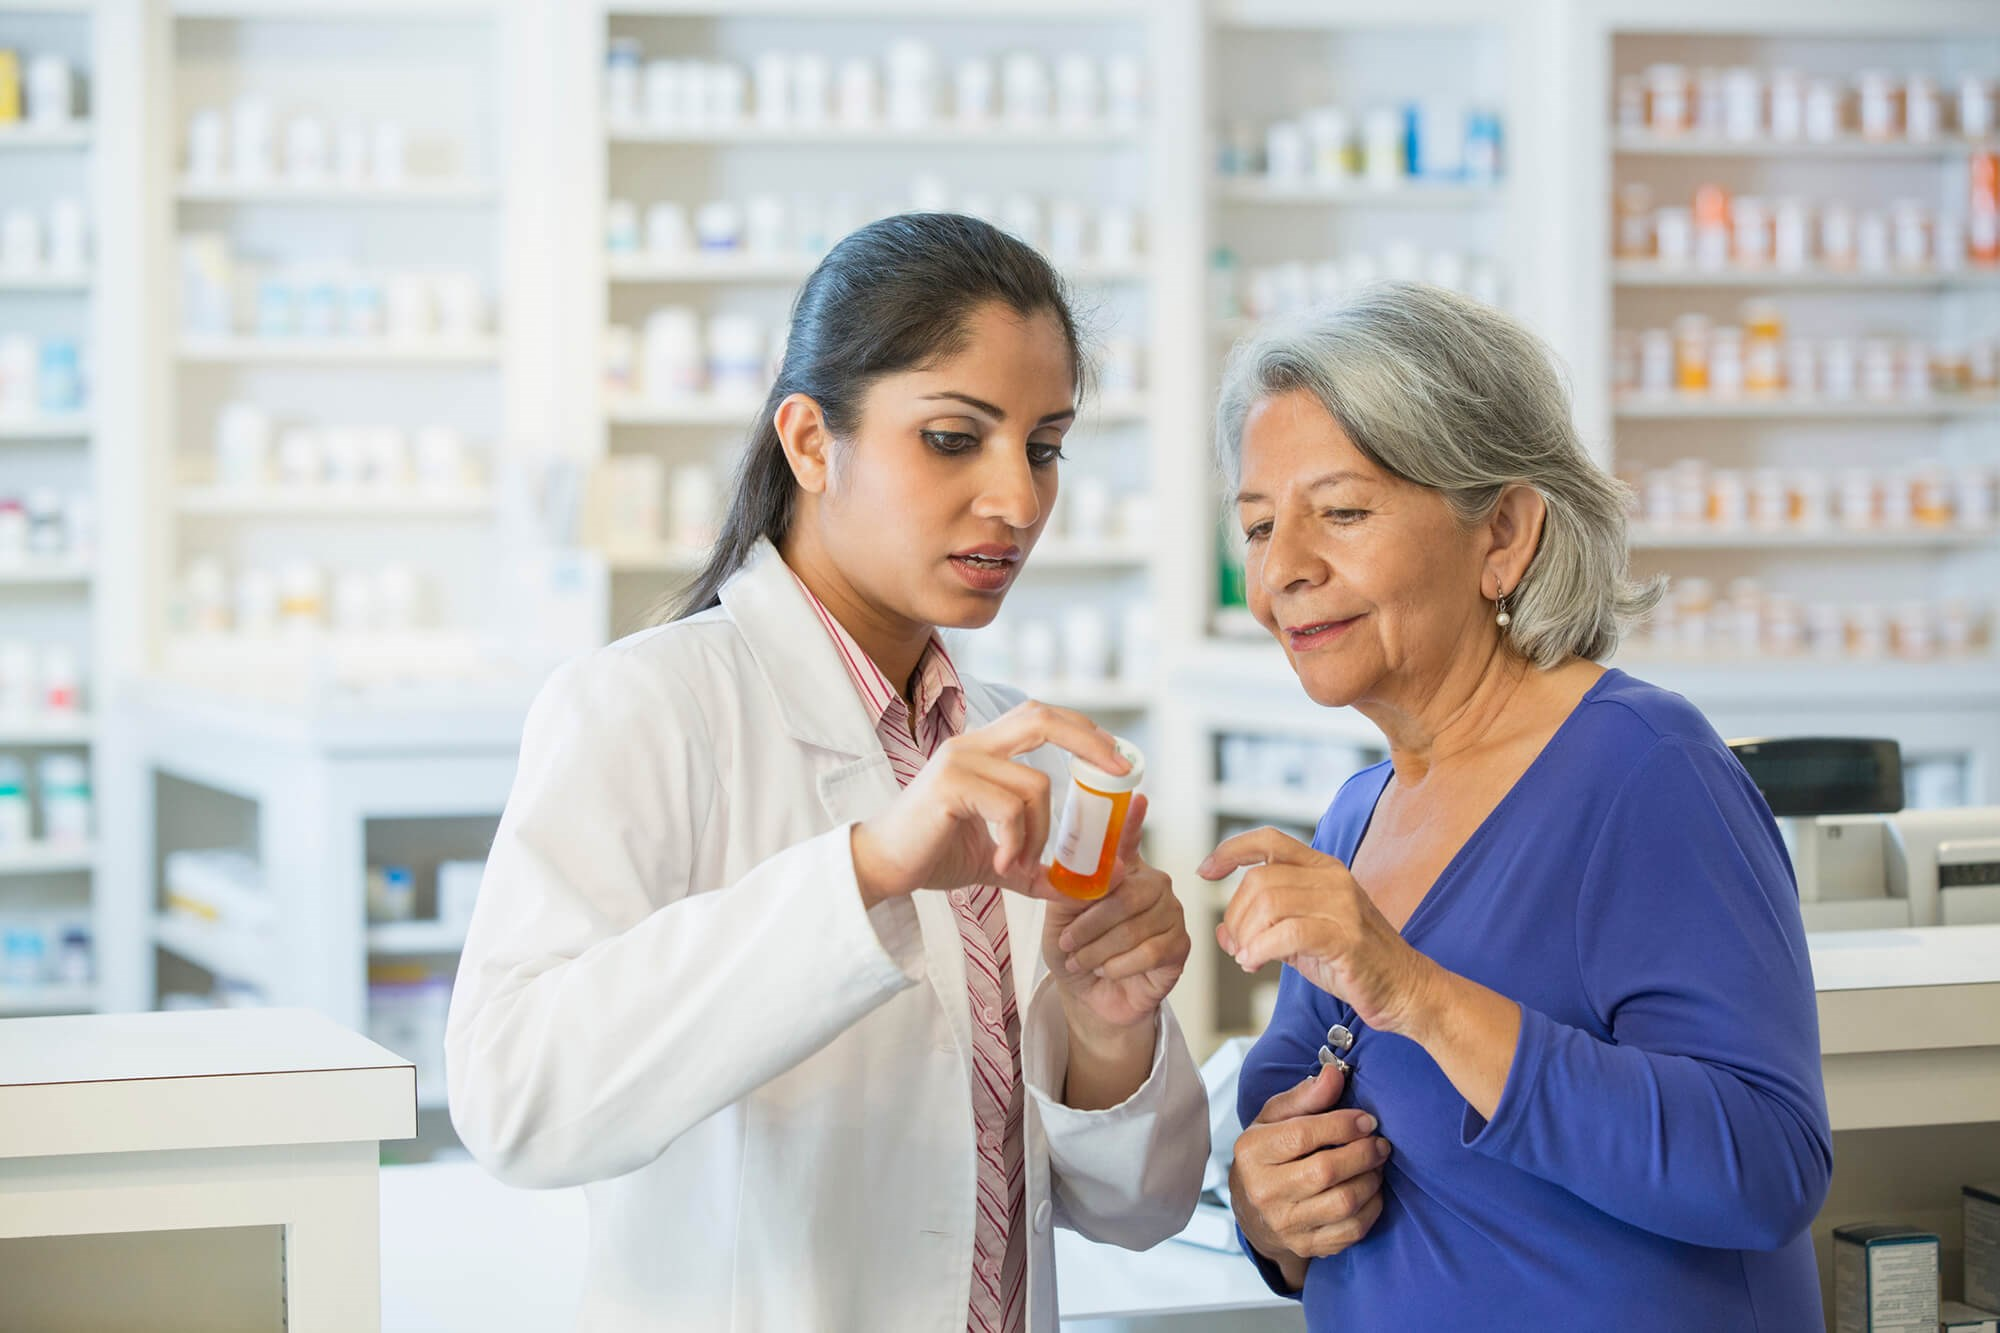 Integrating pharmacists into care for older patients improved vaccination rates, researchers found.